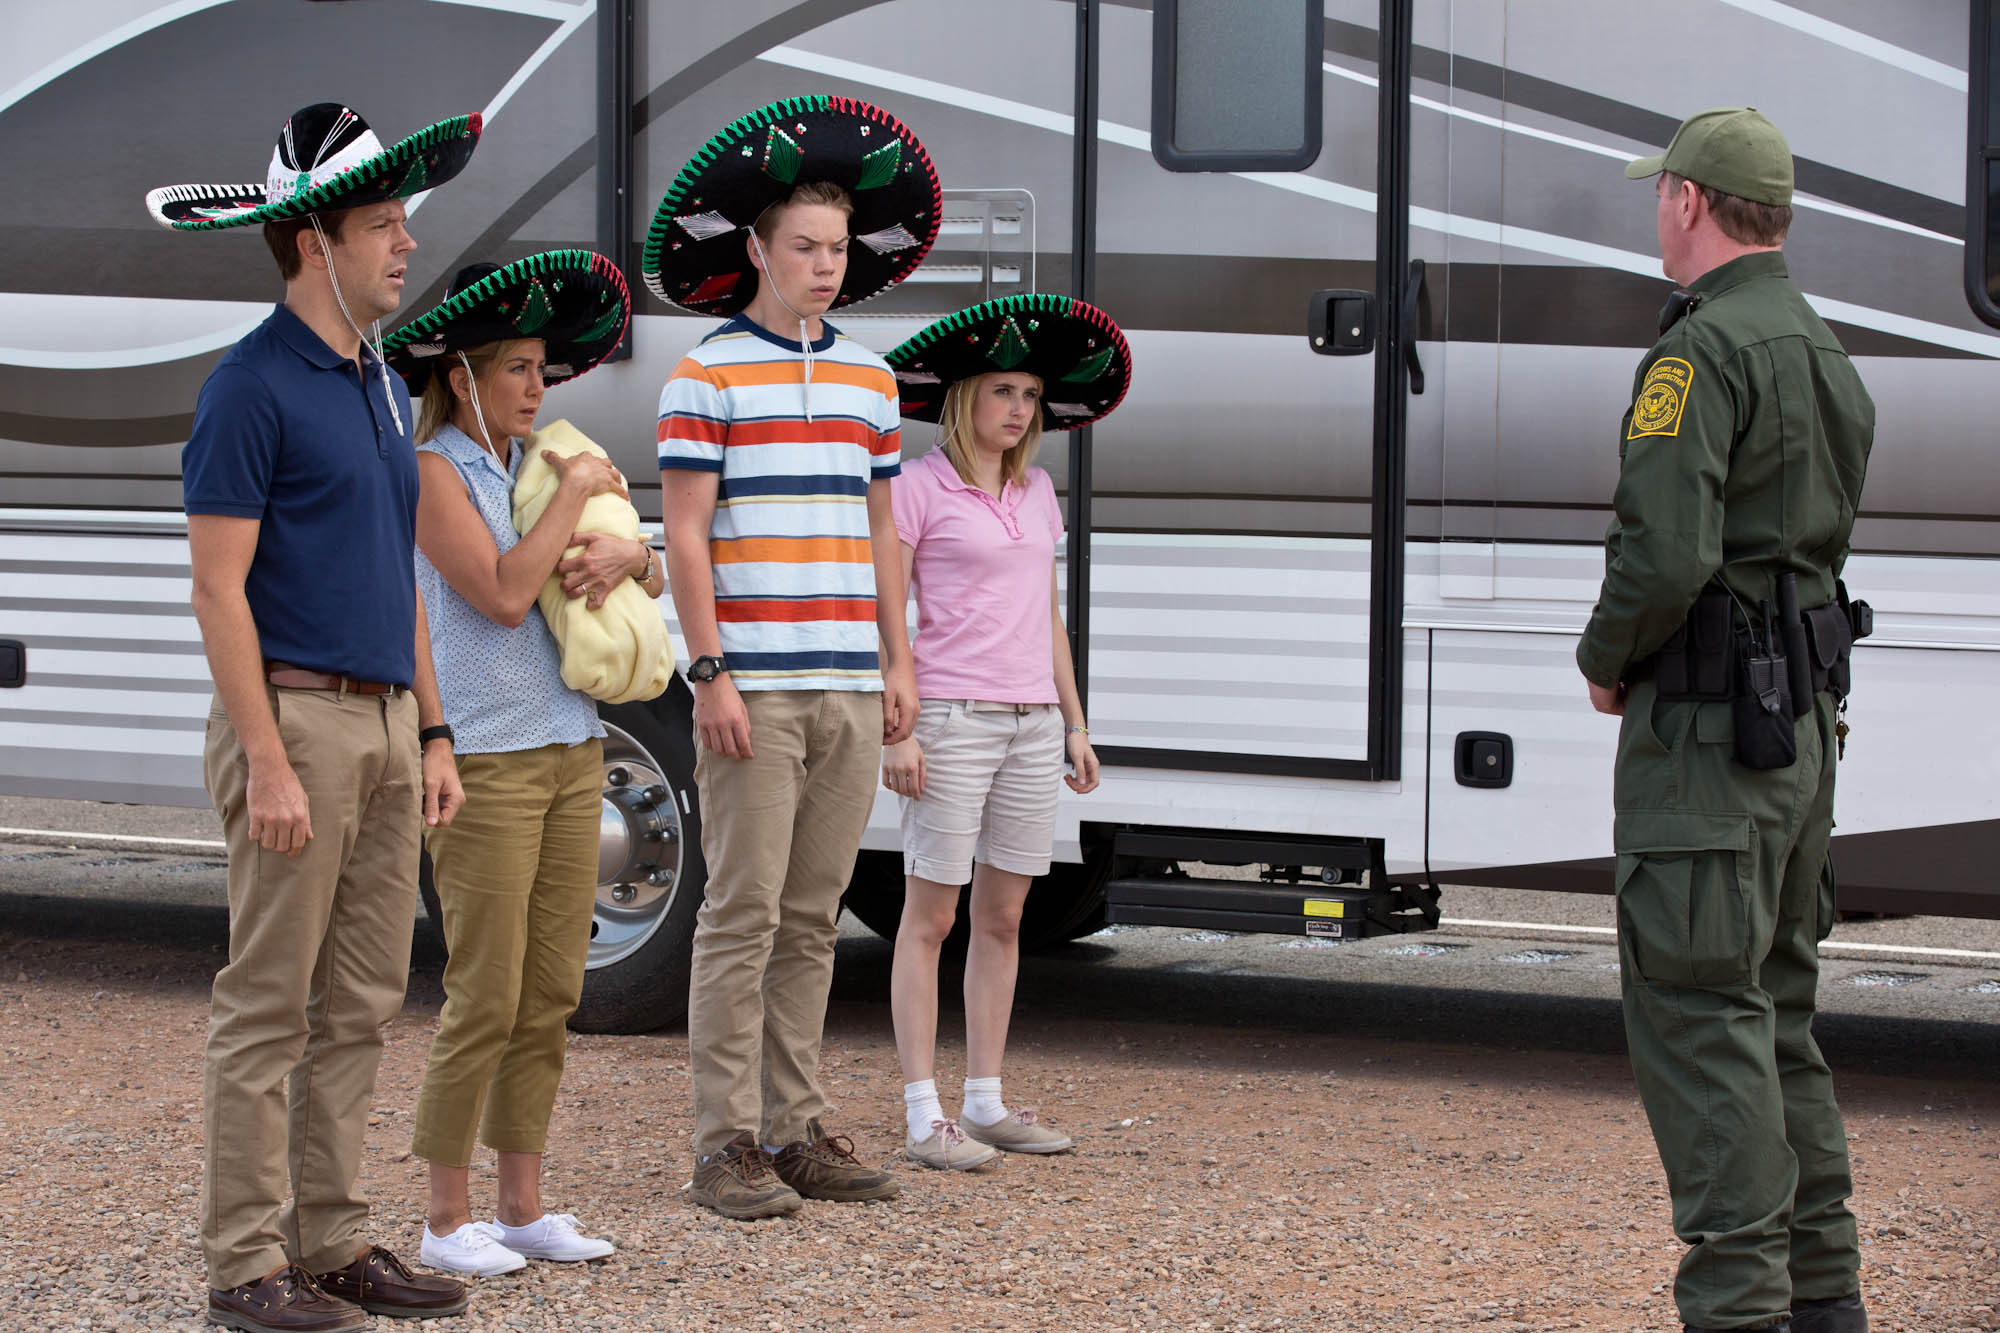 The Millers (Jason Sudekis, Jennifer Aniston, Will Porter and Emma Roberts) attempt to pass through Customs at the U.S.-Mexican border. (Photo courtesy of Warner Bros. Pictures)